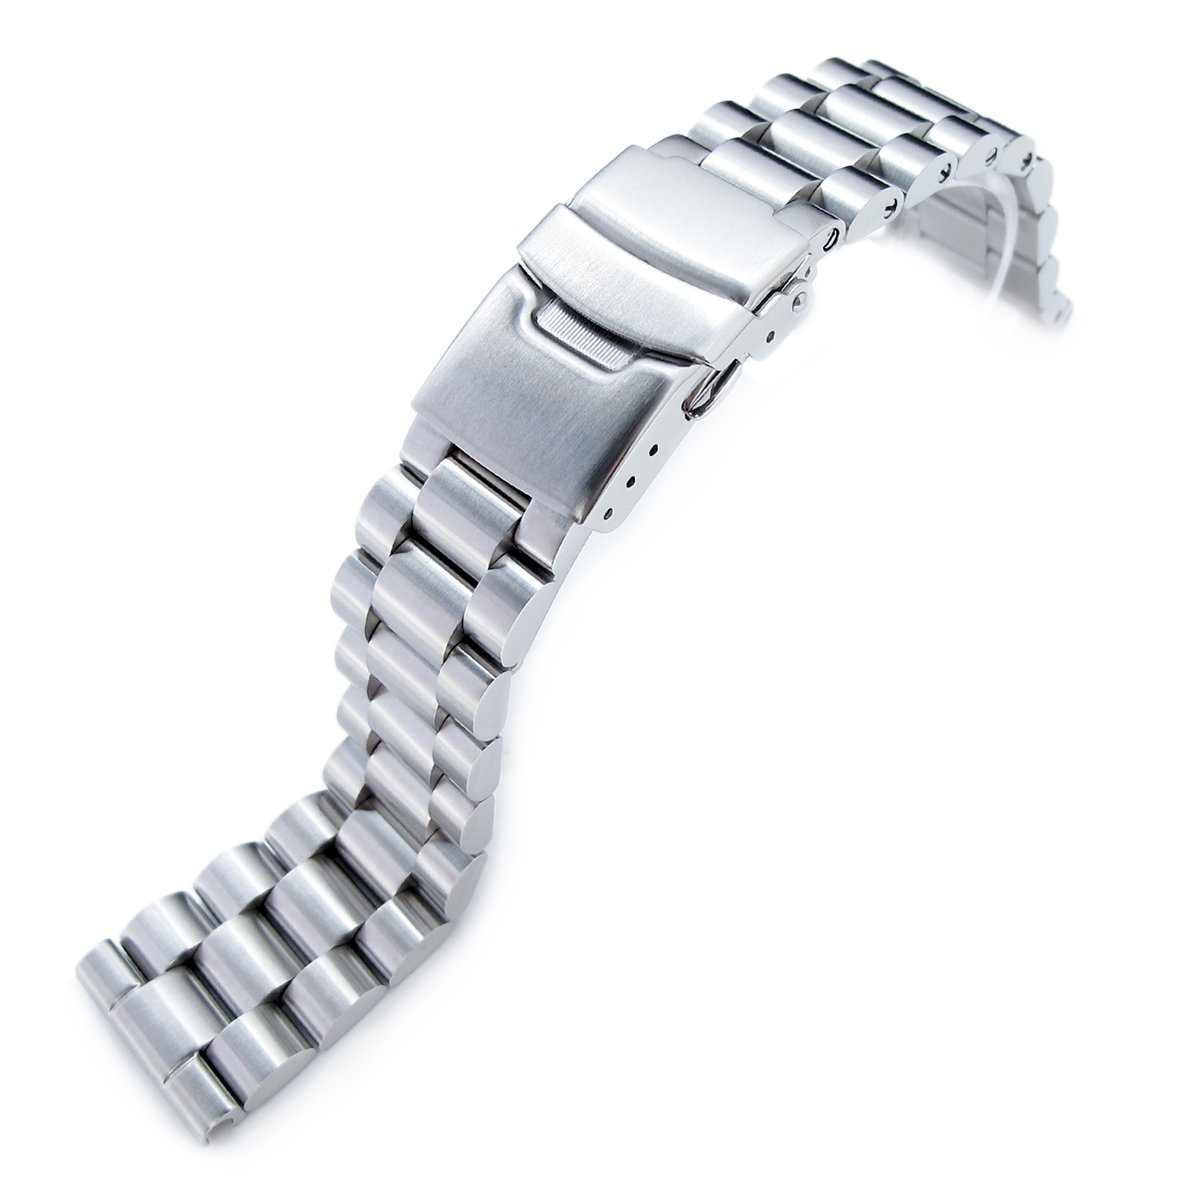 22mm Endmill Solid Metal Watch Bracelet, 316L Stainless Steel, Straight End by 22mm Metal Band by MiLTAT